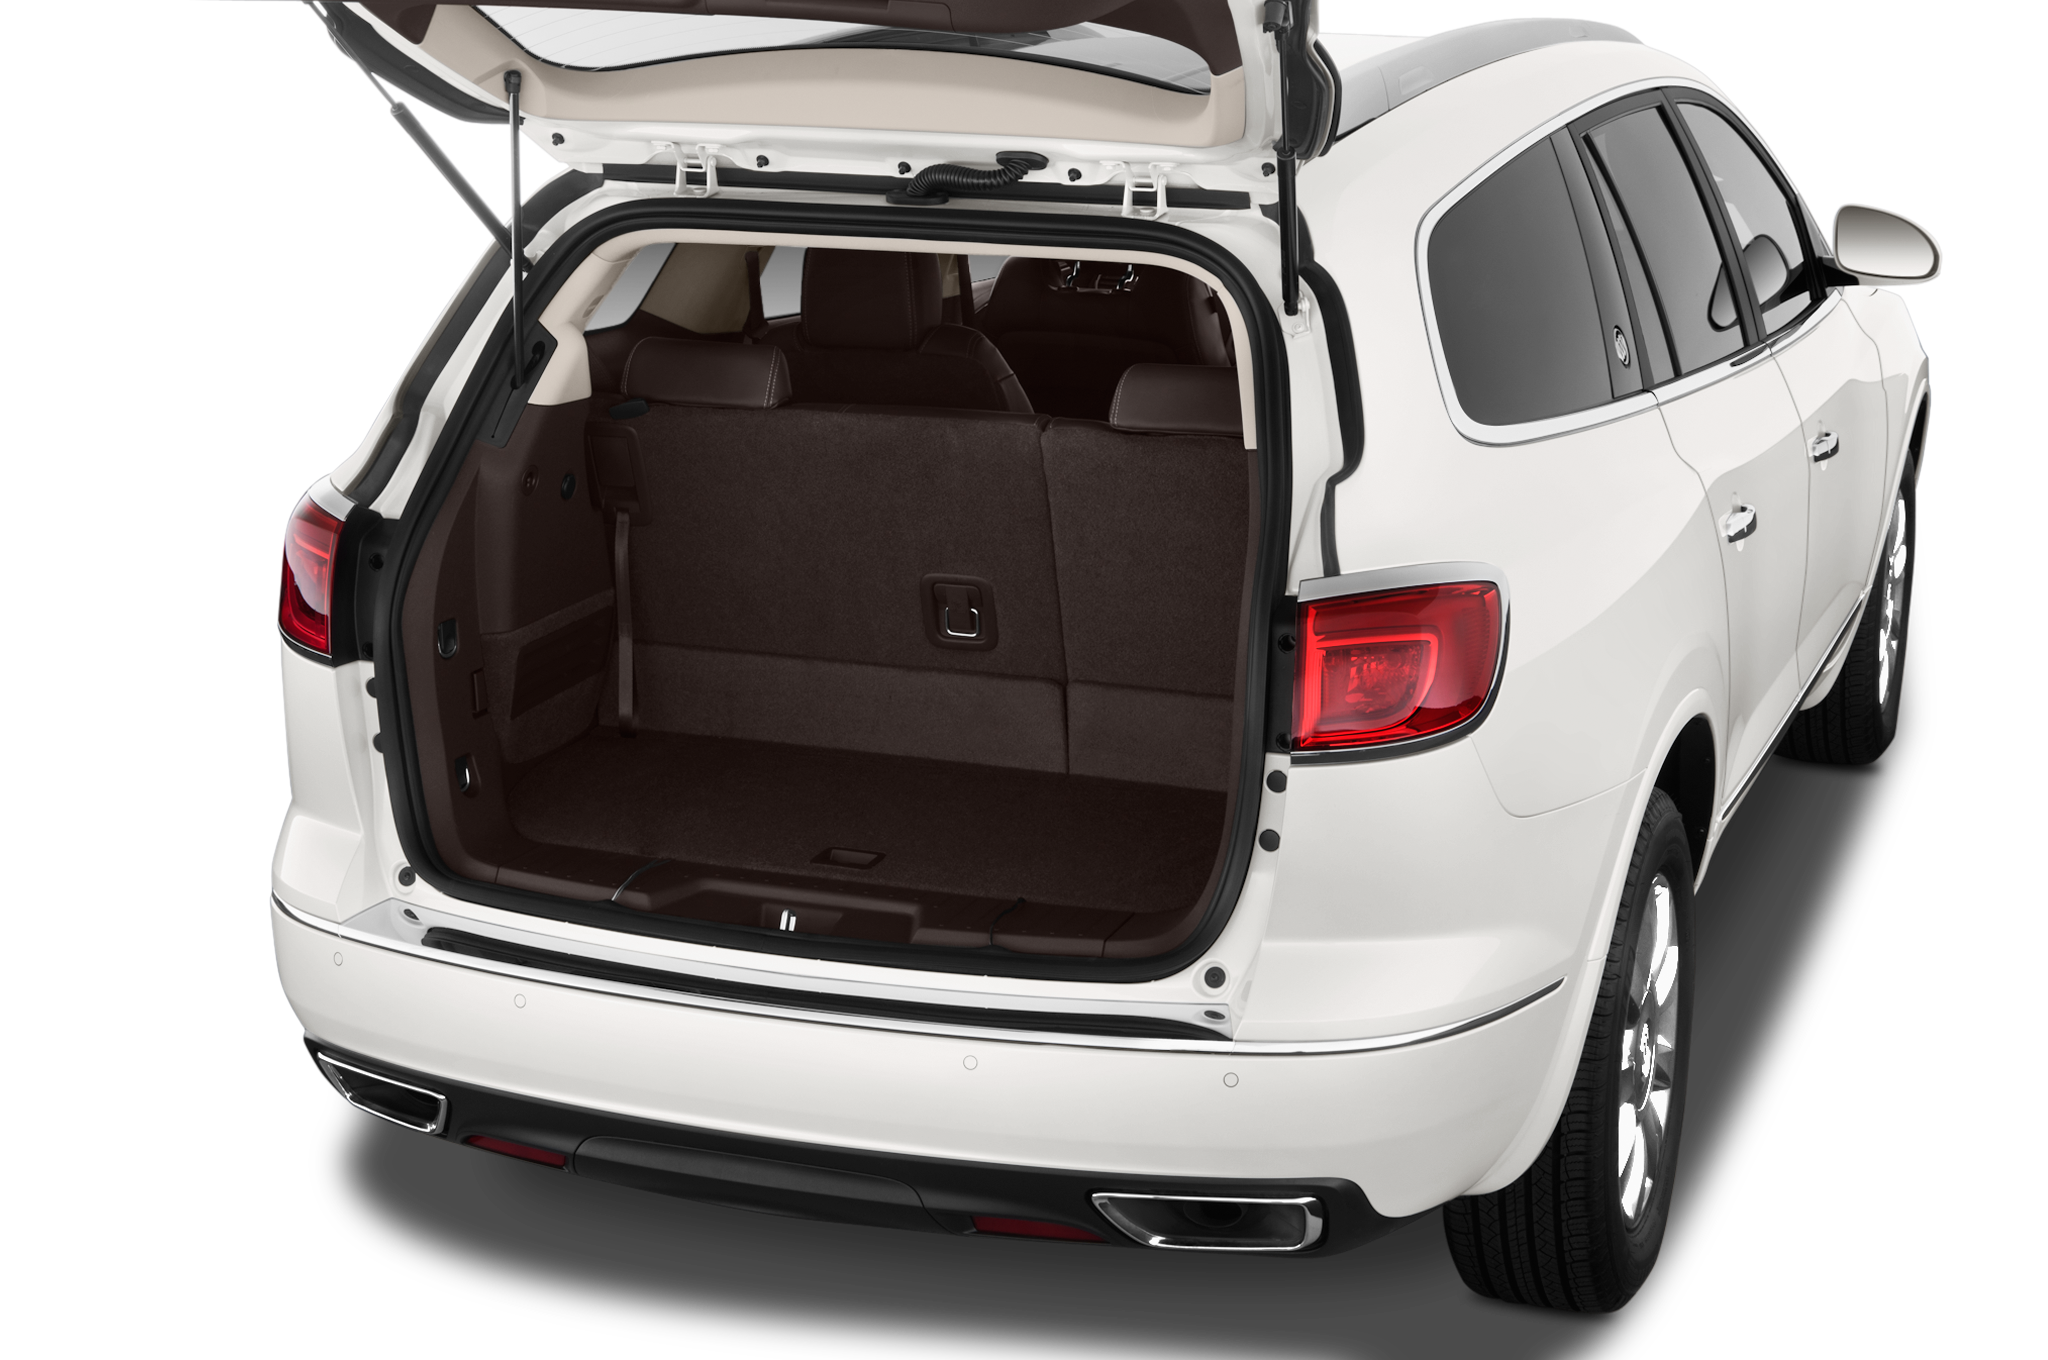 2017 Buick Enclave Sport Touring Edition Adds Minor Visual ...